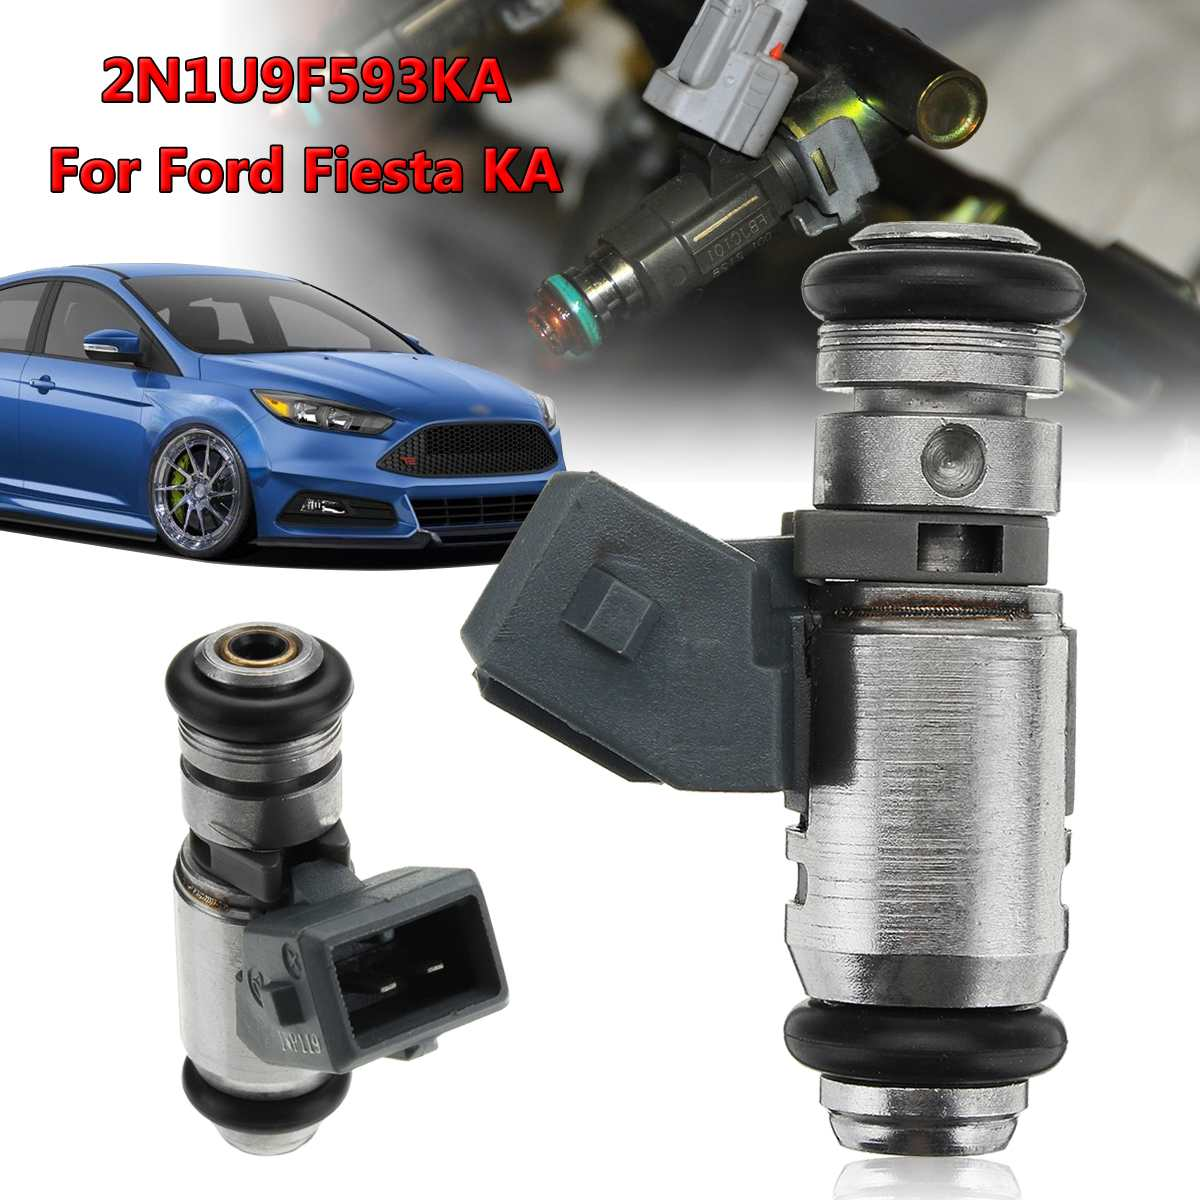 Mk4 Bosch Petrol Injector Fits Ford Fiesta 1.3 FAST DELIVERY